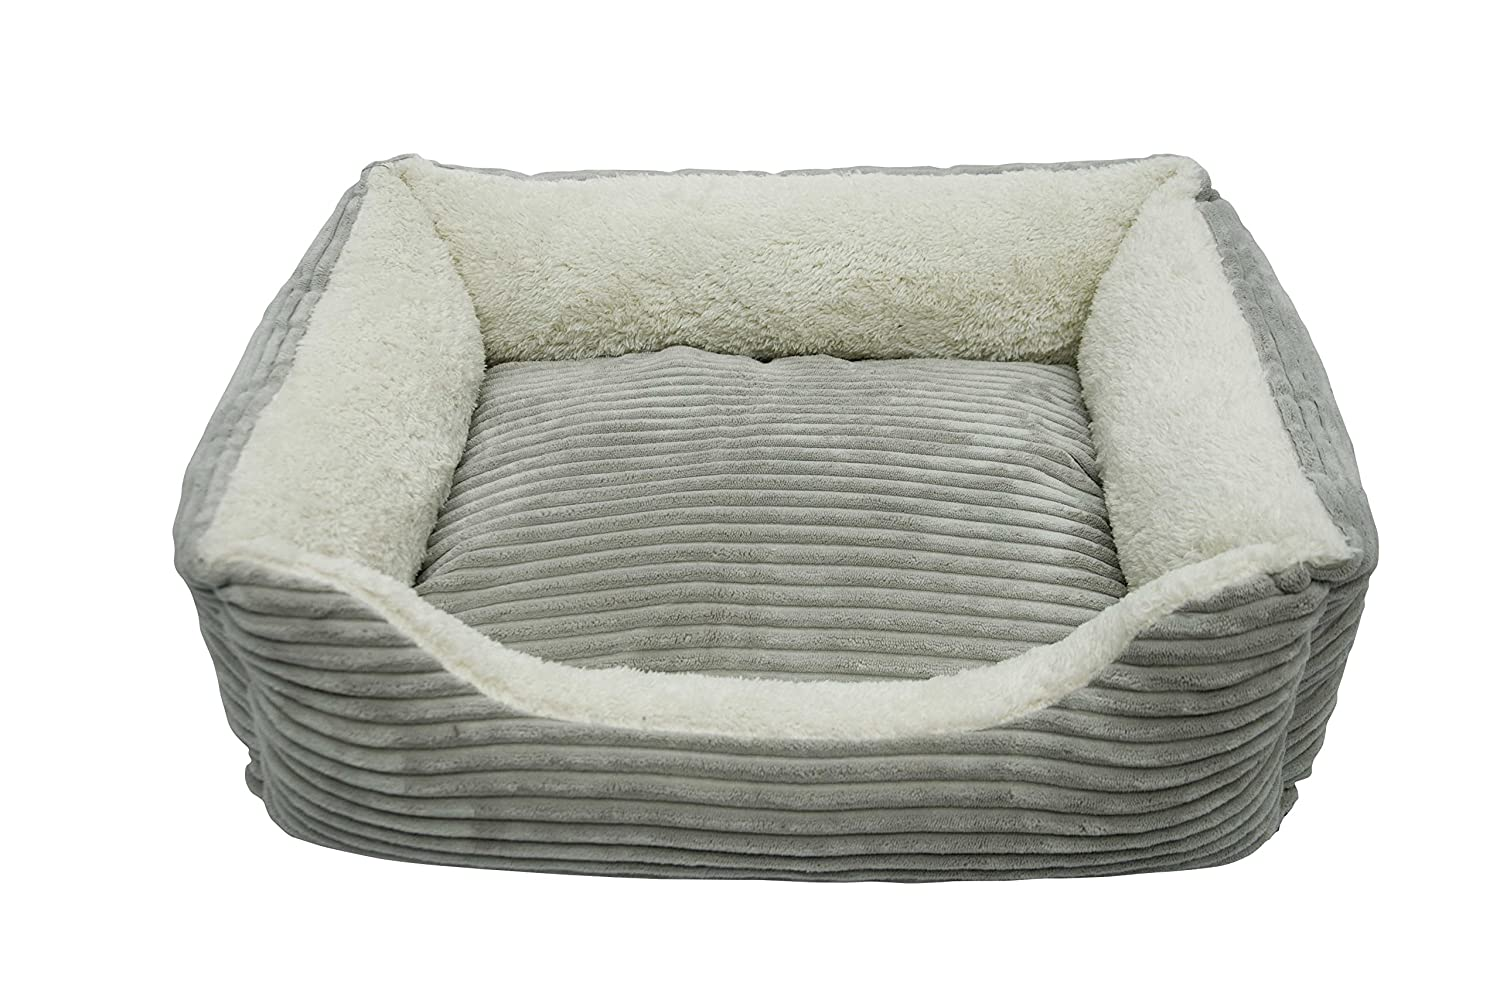 One for Pets Fabric Portable Pet Kennel